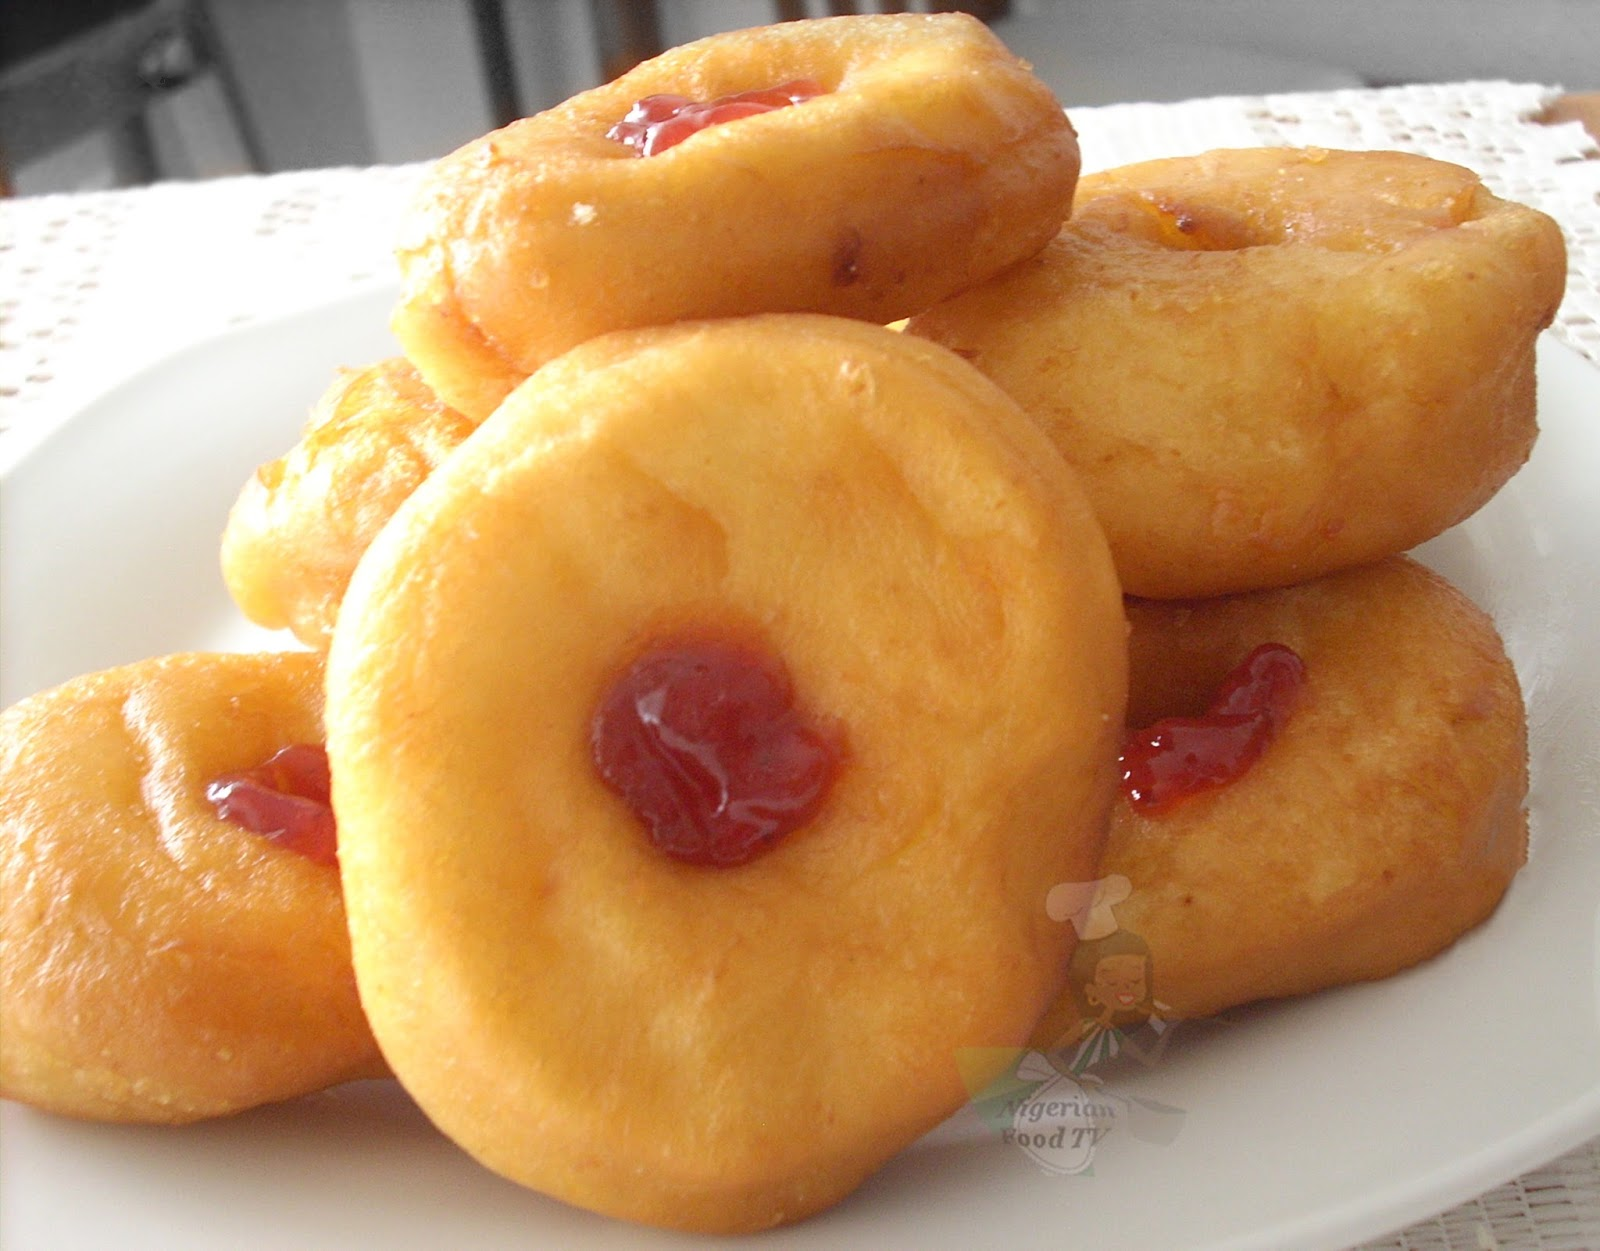 How to make nigerian donuts nigerian doughnuts filled with jam how to make nigerian donuts nigerian donuts nigerian doughnuts nigerian food tv forumfinder Image collections